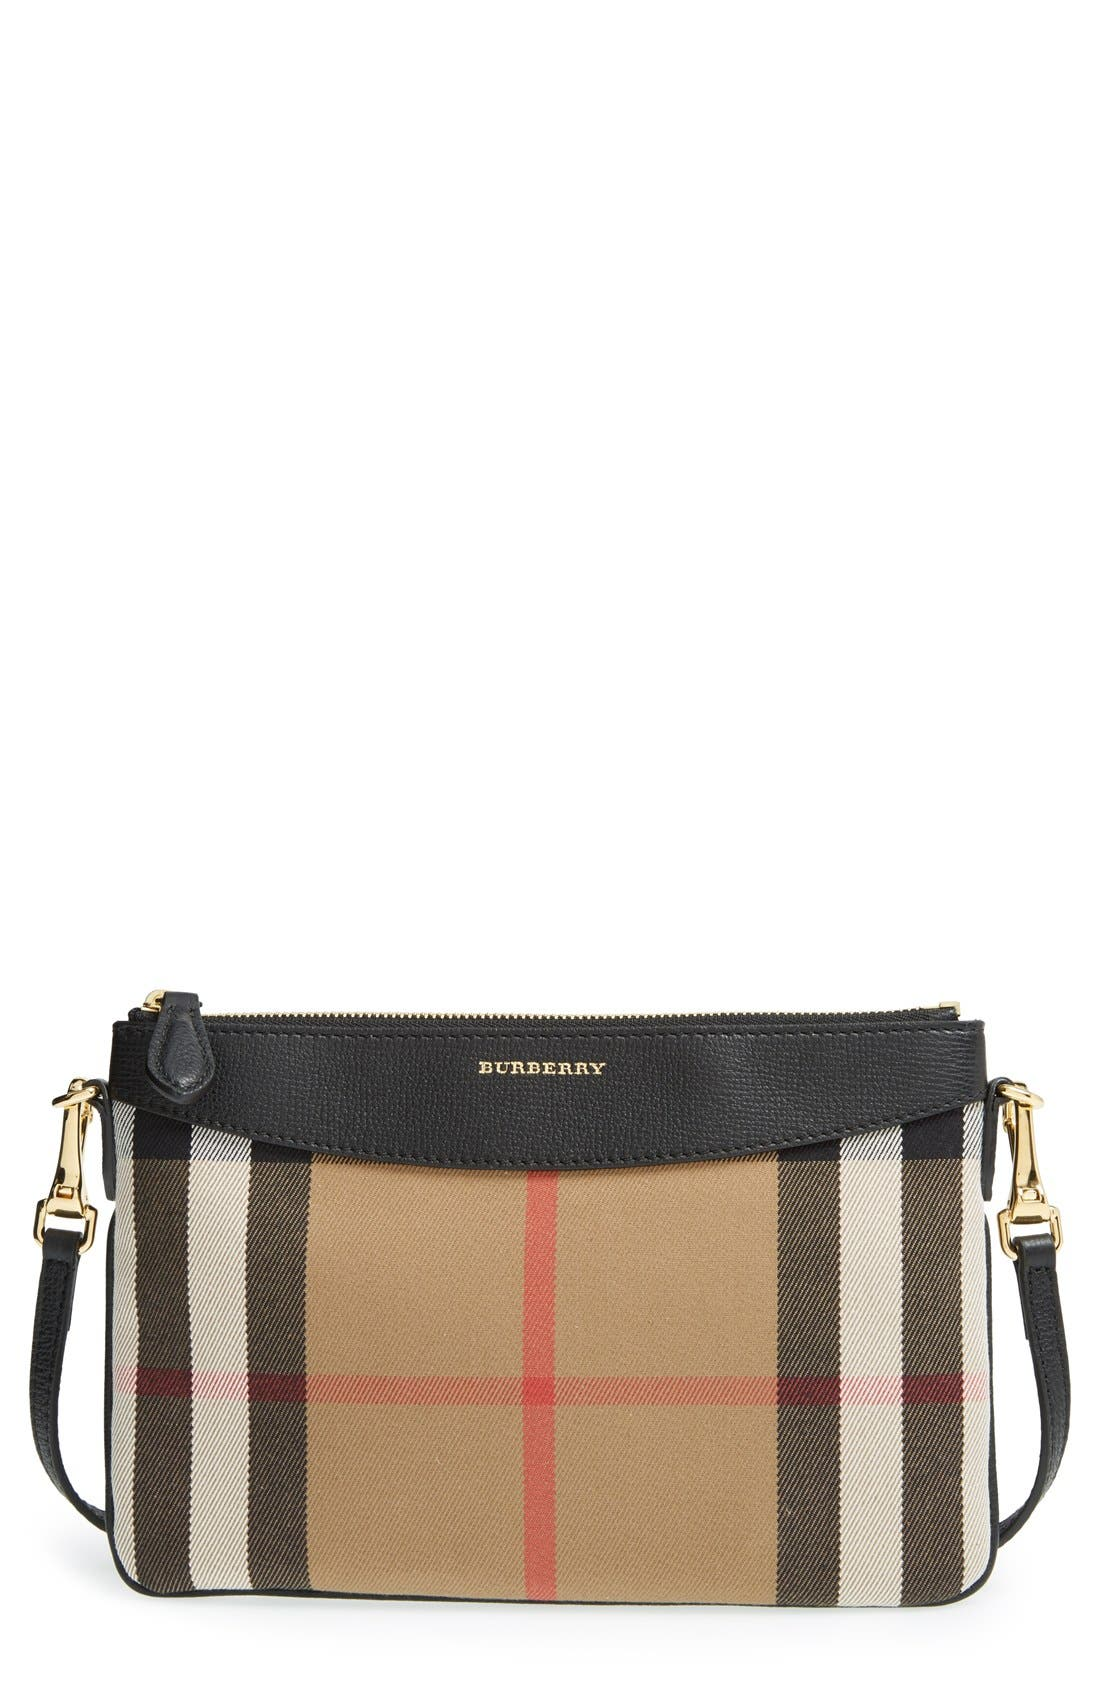 BURBERRY Peyton - House Check Crossbody Bag